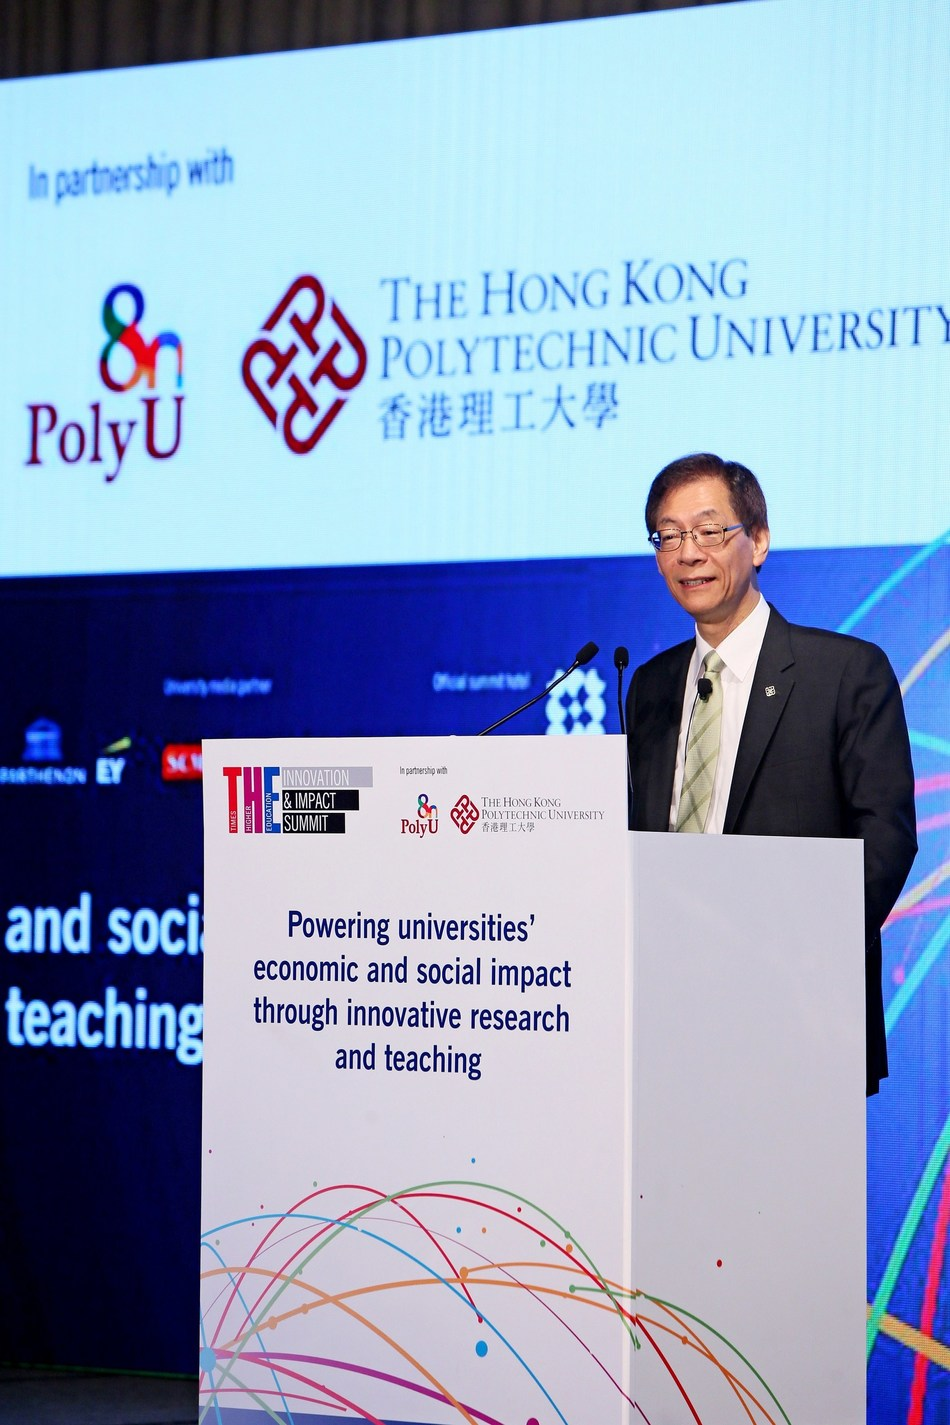 "Professor Timothy W. Tong, PolyU President, said, ""PolyU looks forward to joining hands with more powerhouses of knowledge around the world to empower universities' economic and social impact, shaping a better future for all."" (PRNewsfoto/The Hong Kong Polytechnic Univer)"